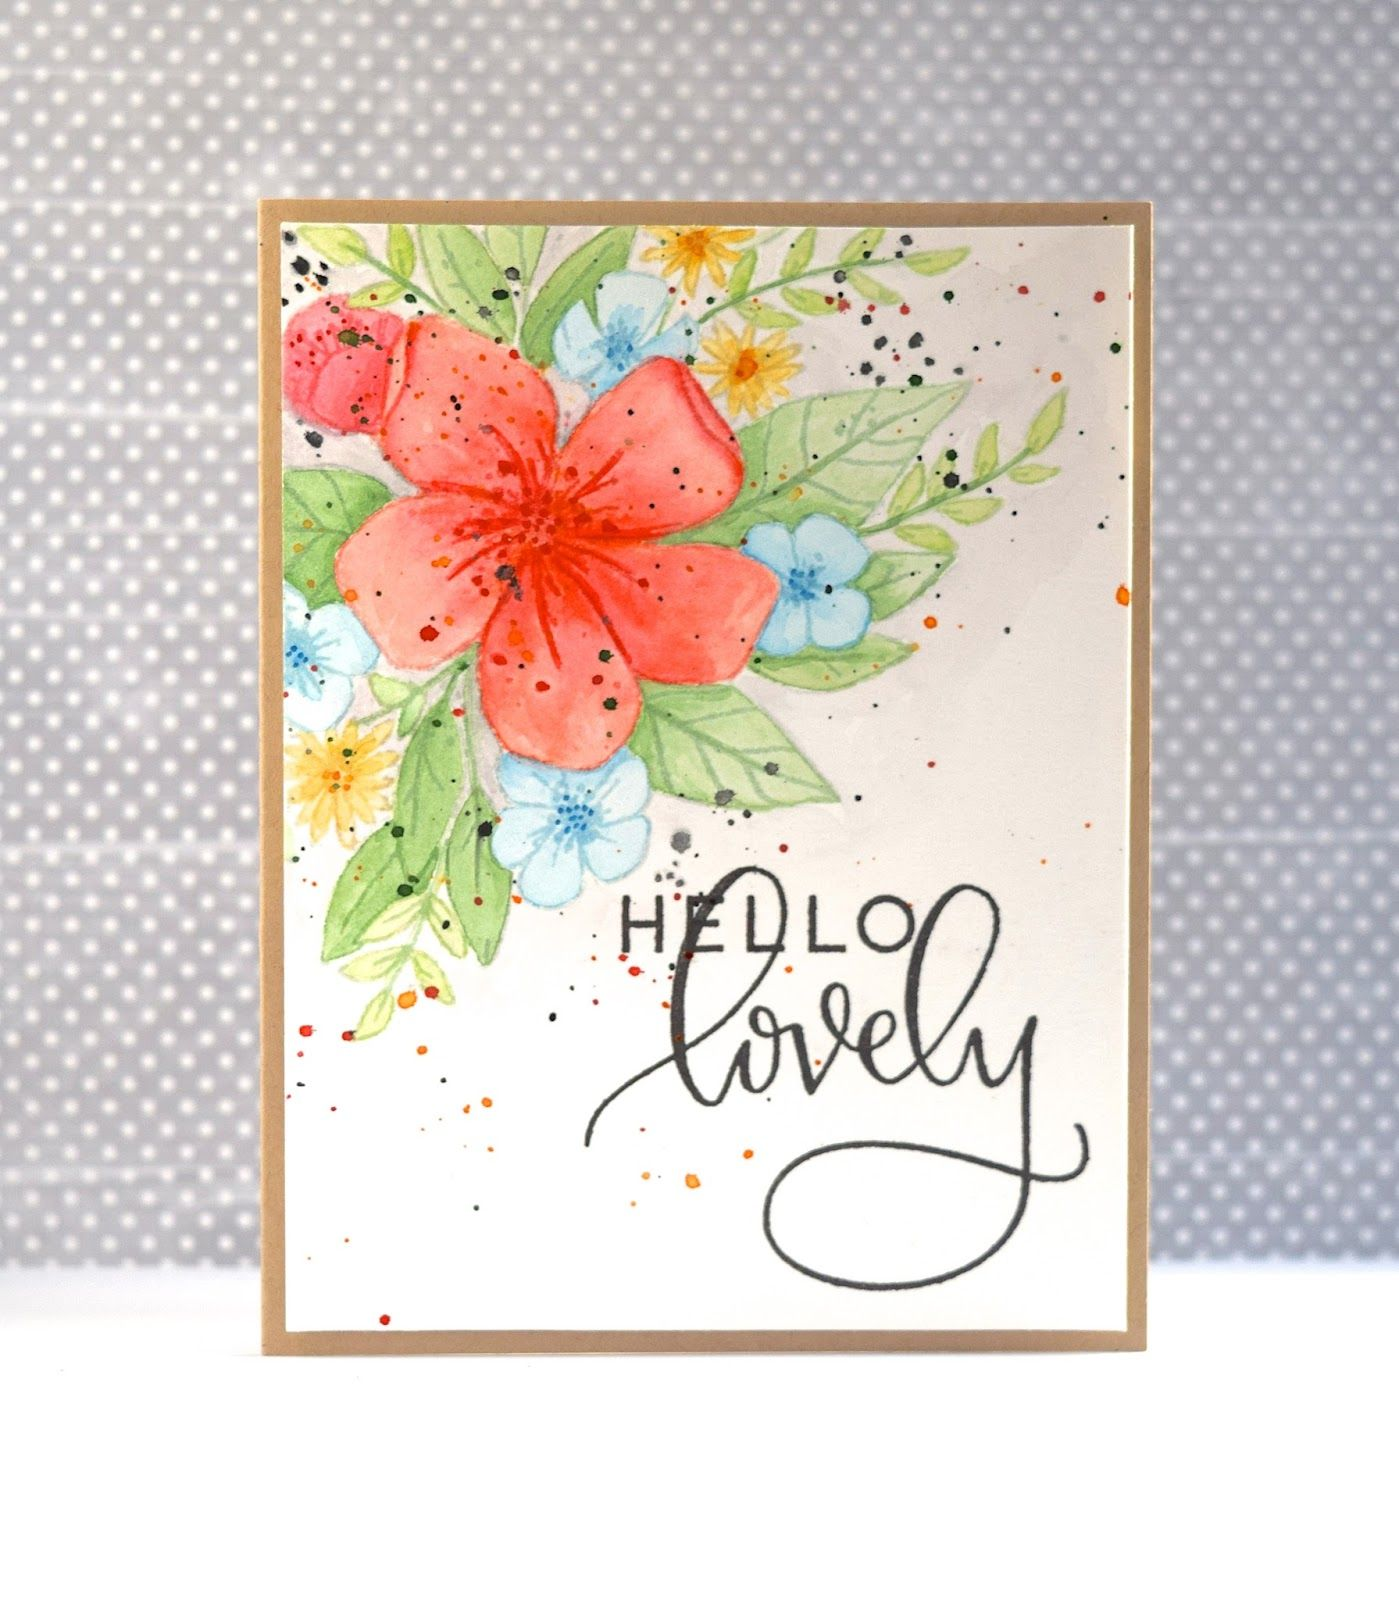 Sooner Rather Than Later Hello Cards Sb Layouts Etc Pinterest